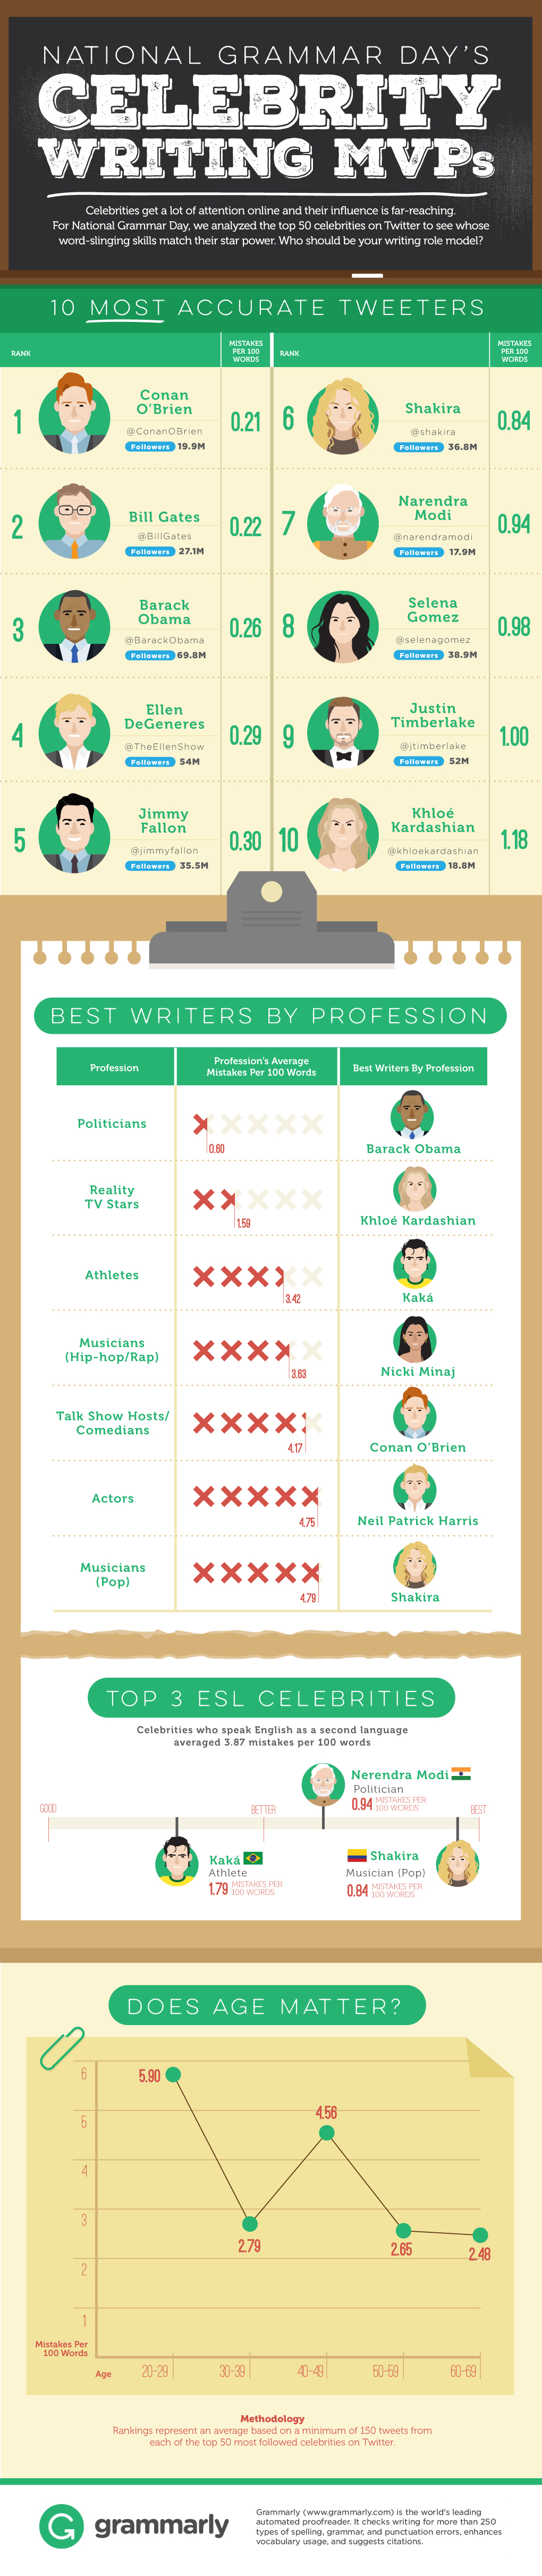 National Grammar Day Celebrity Writing MVPs Infographic